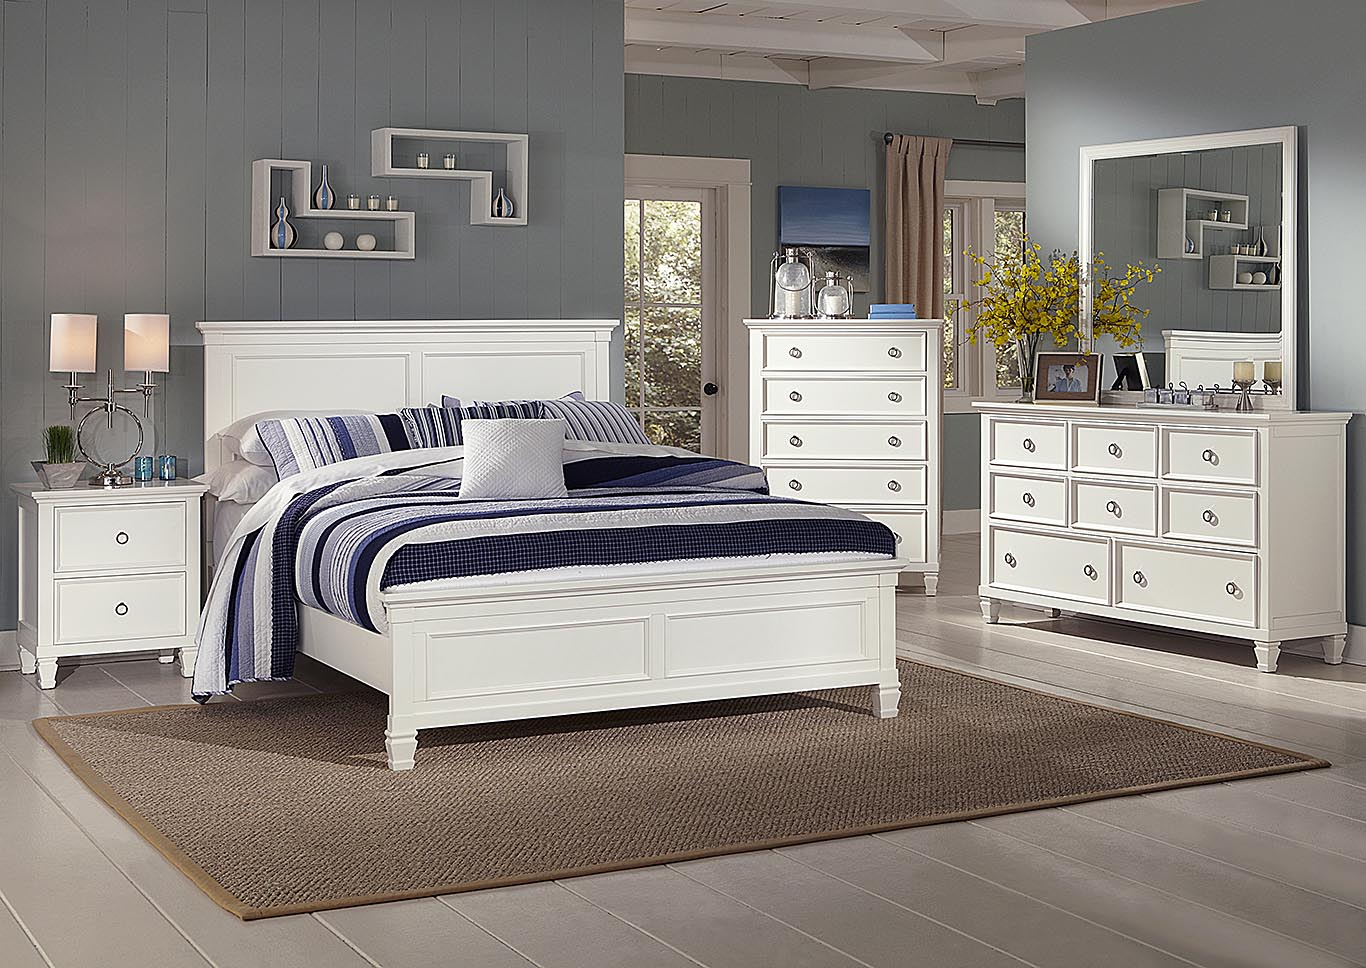 Tamarack White Twin Bed w/Dresser and Mirror,New Classic